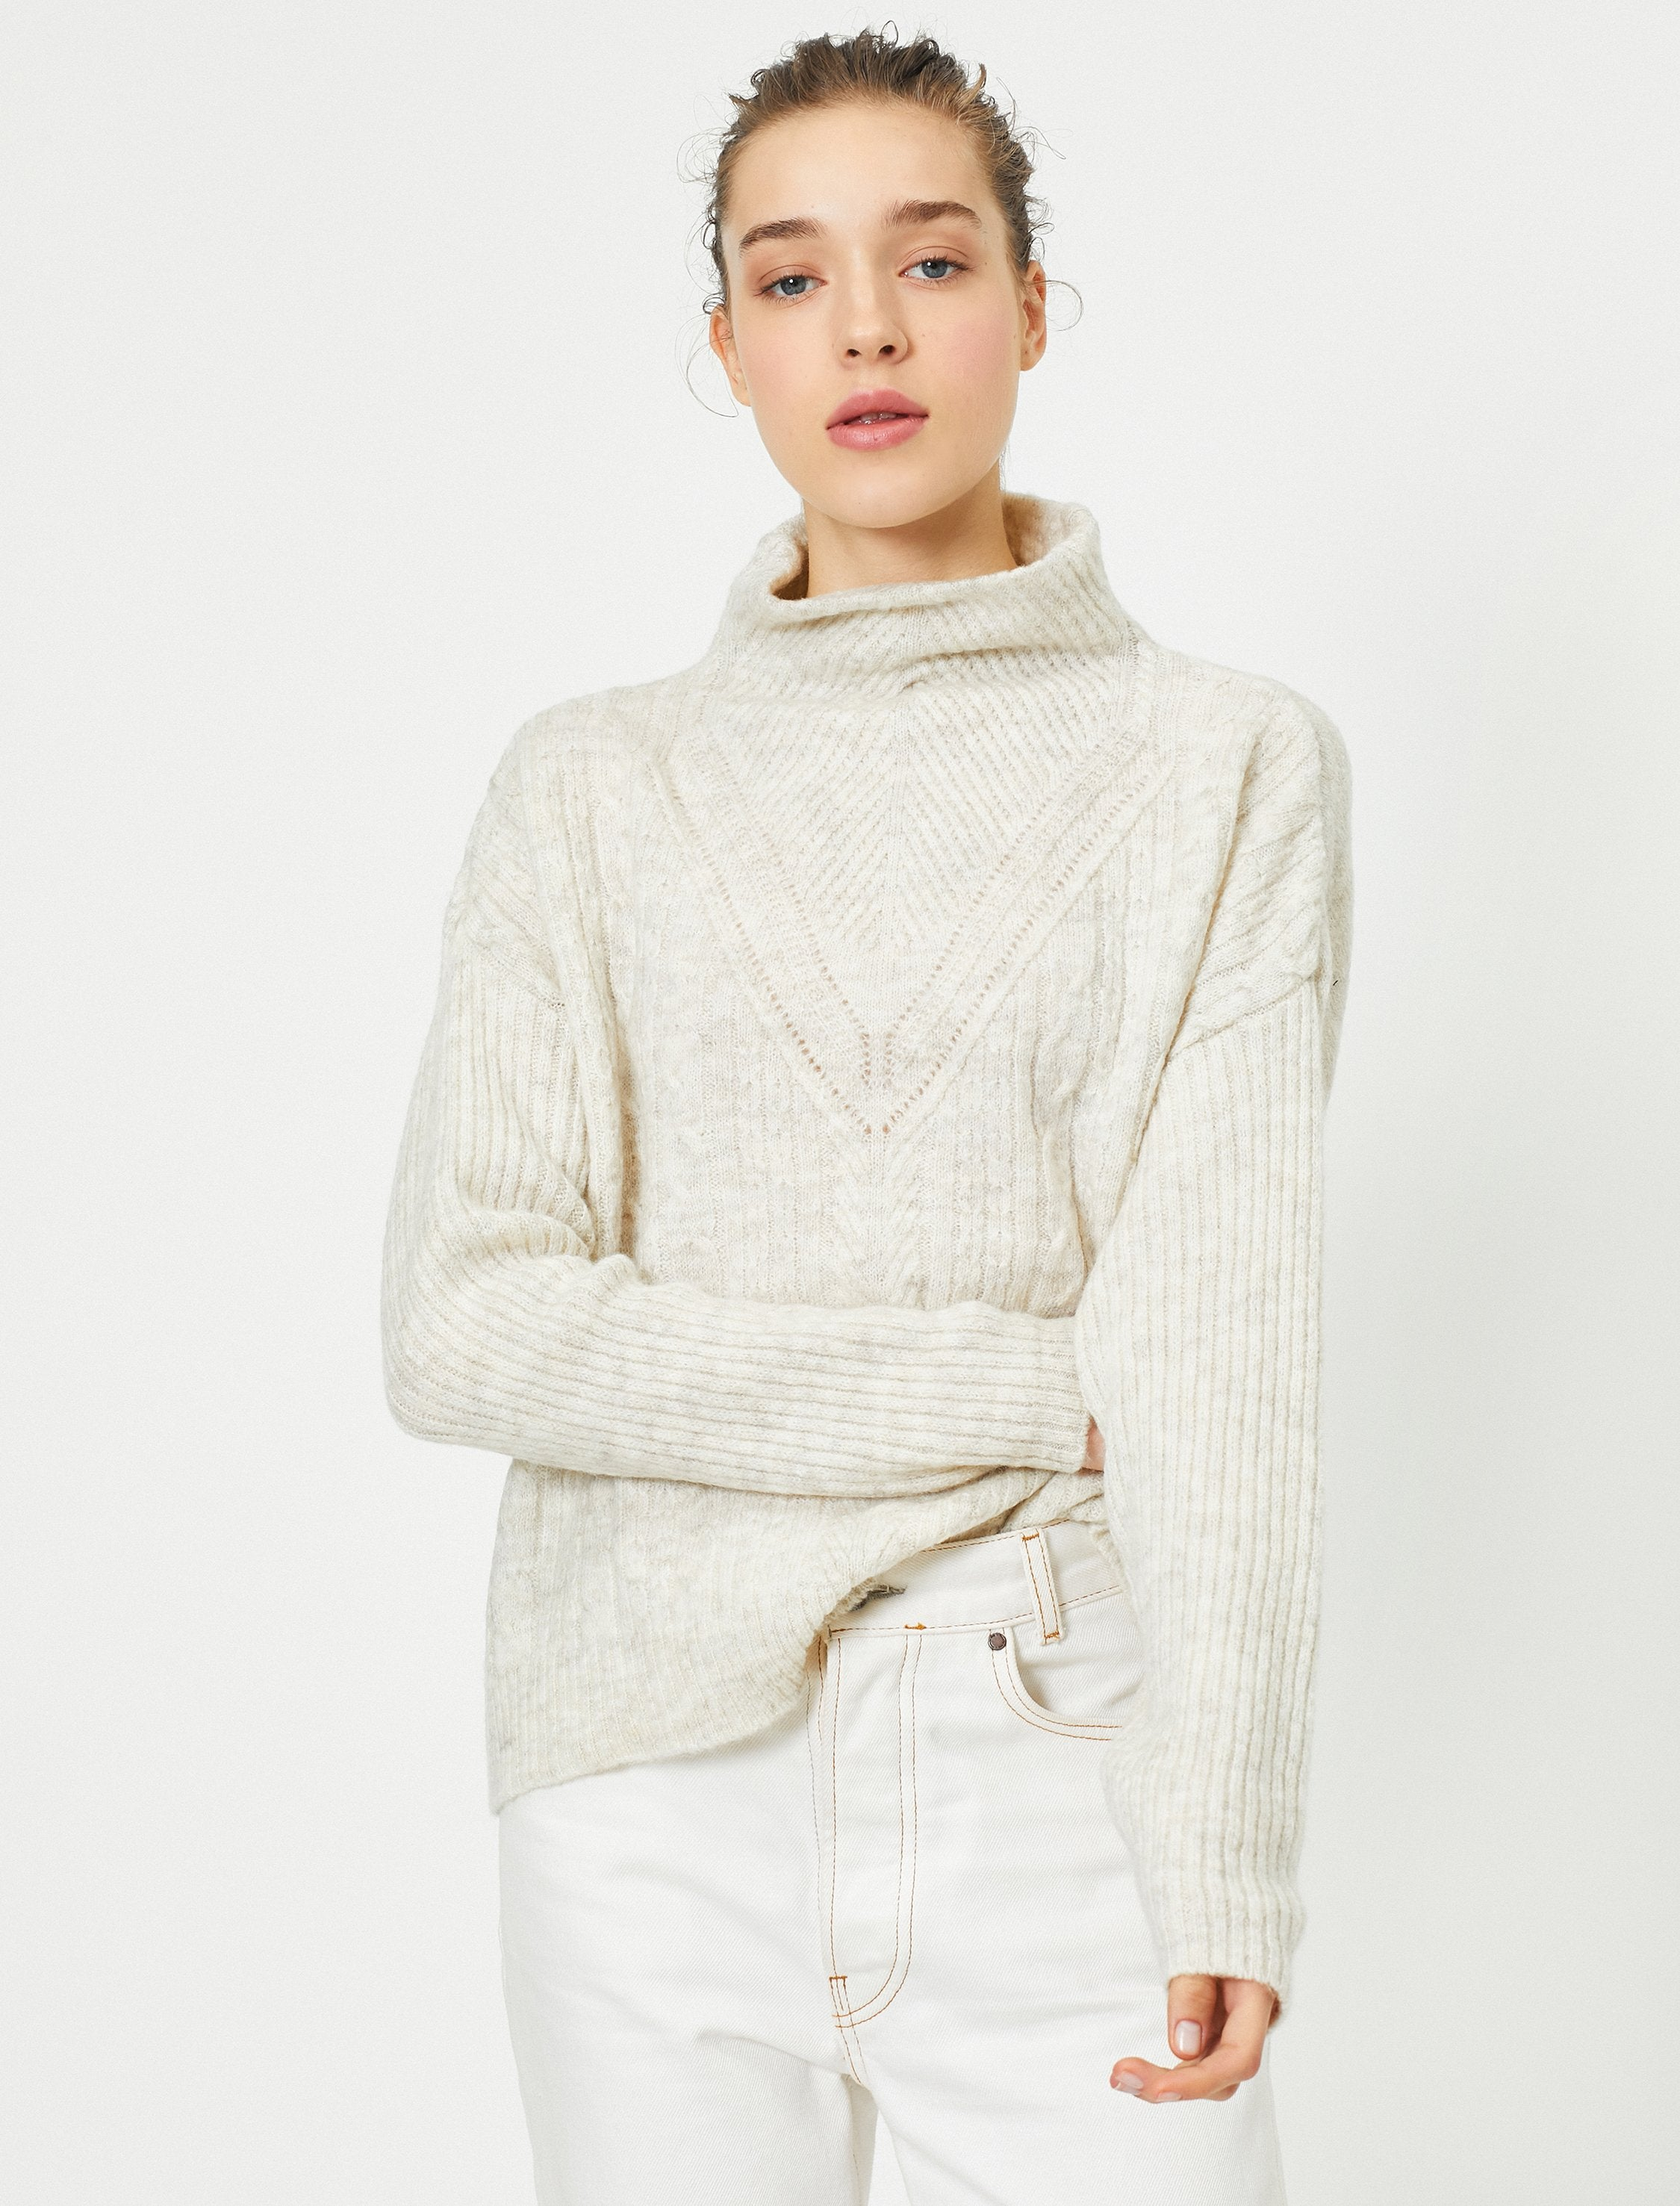 Relaxed Mock Neck Sweater in Cream